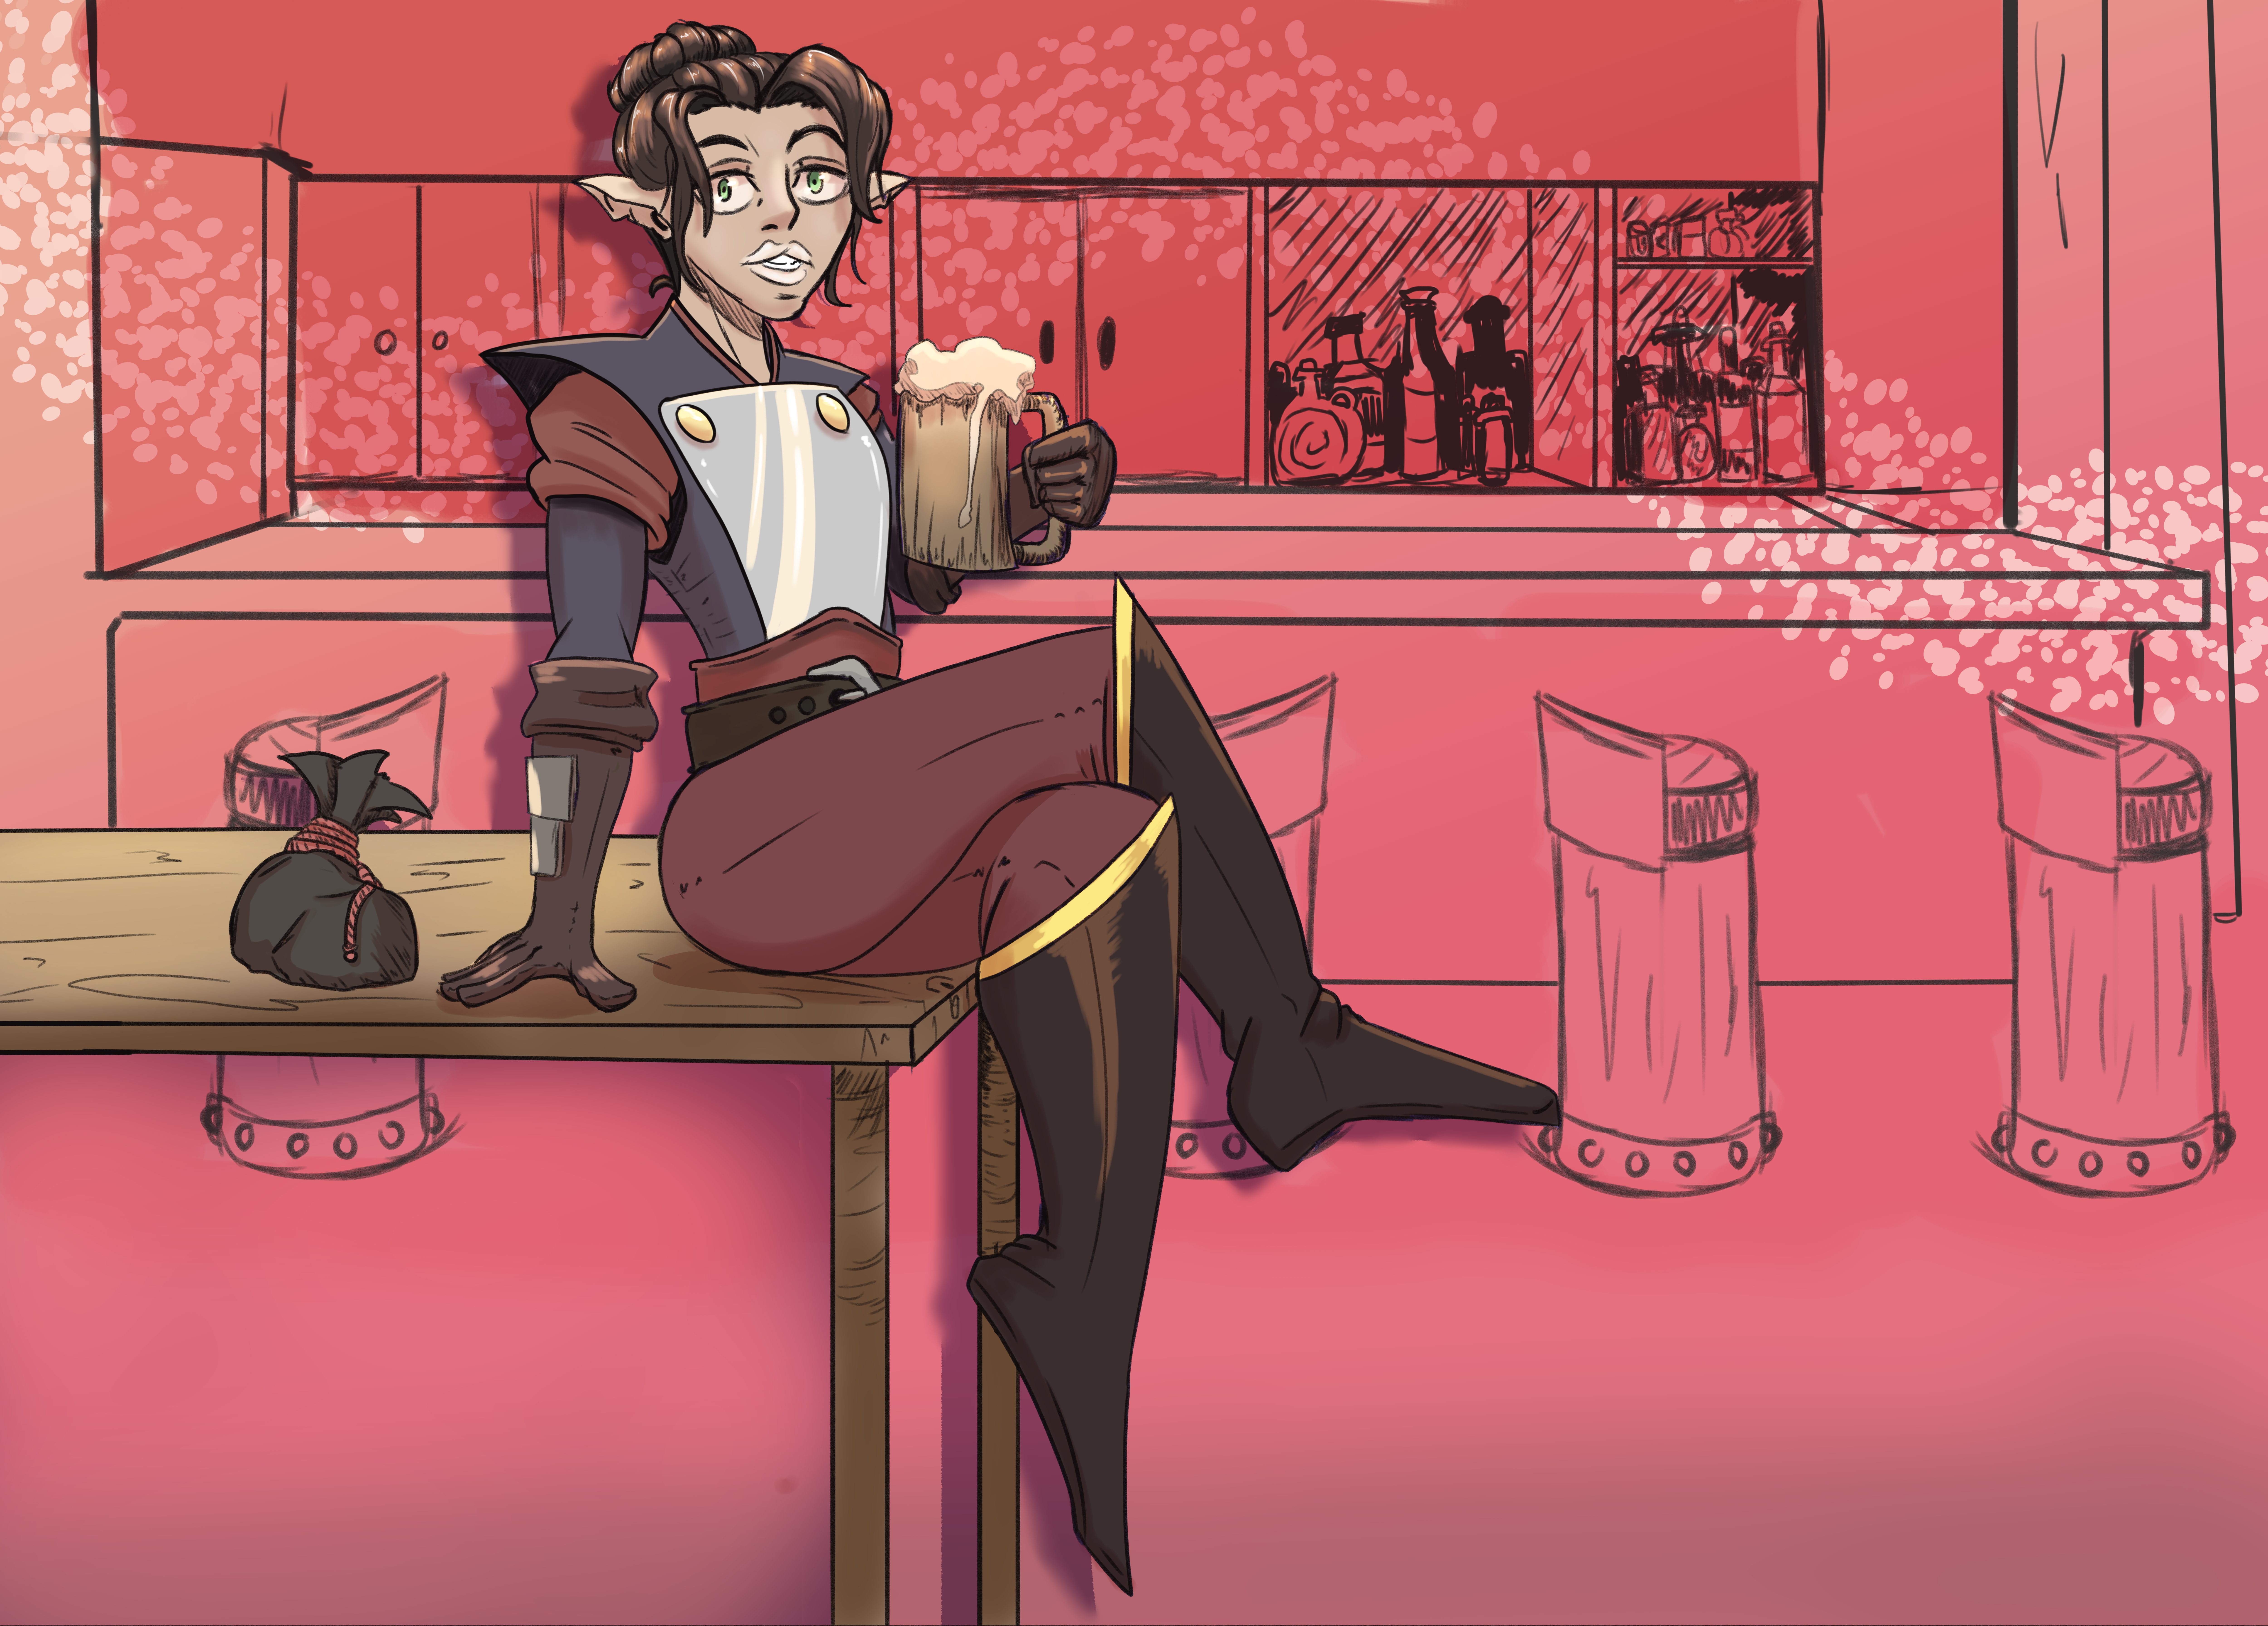 A drink at the tavern